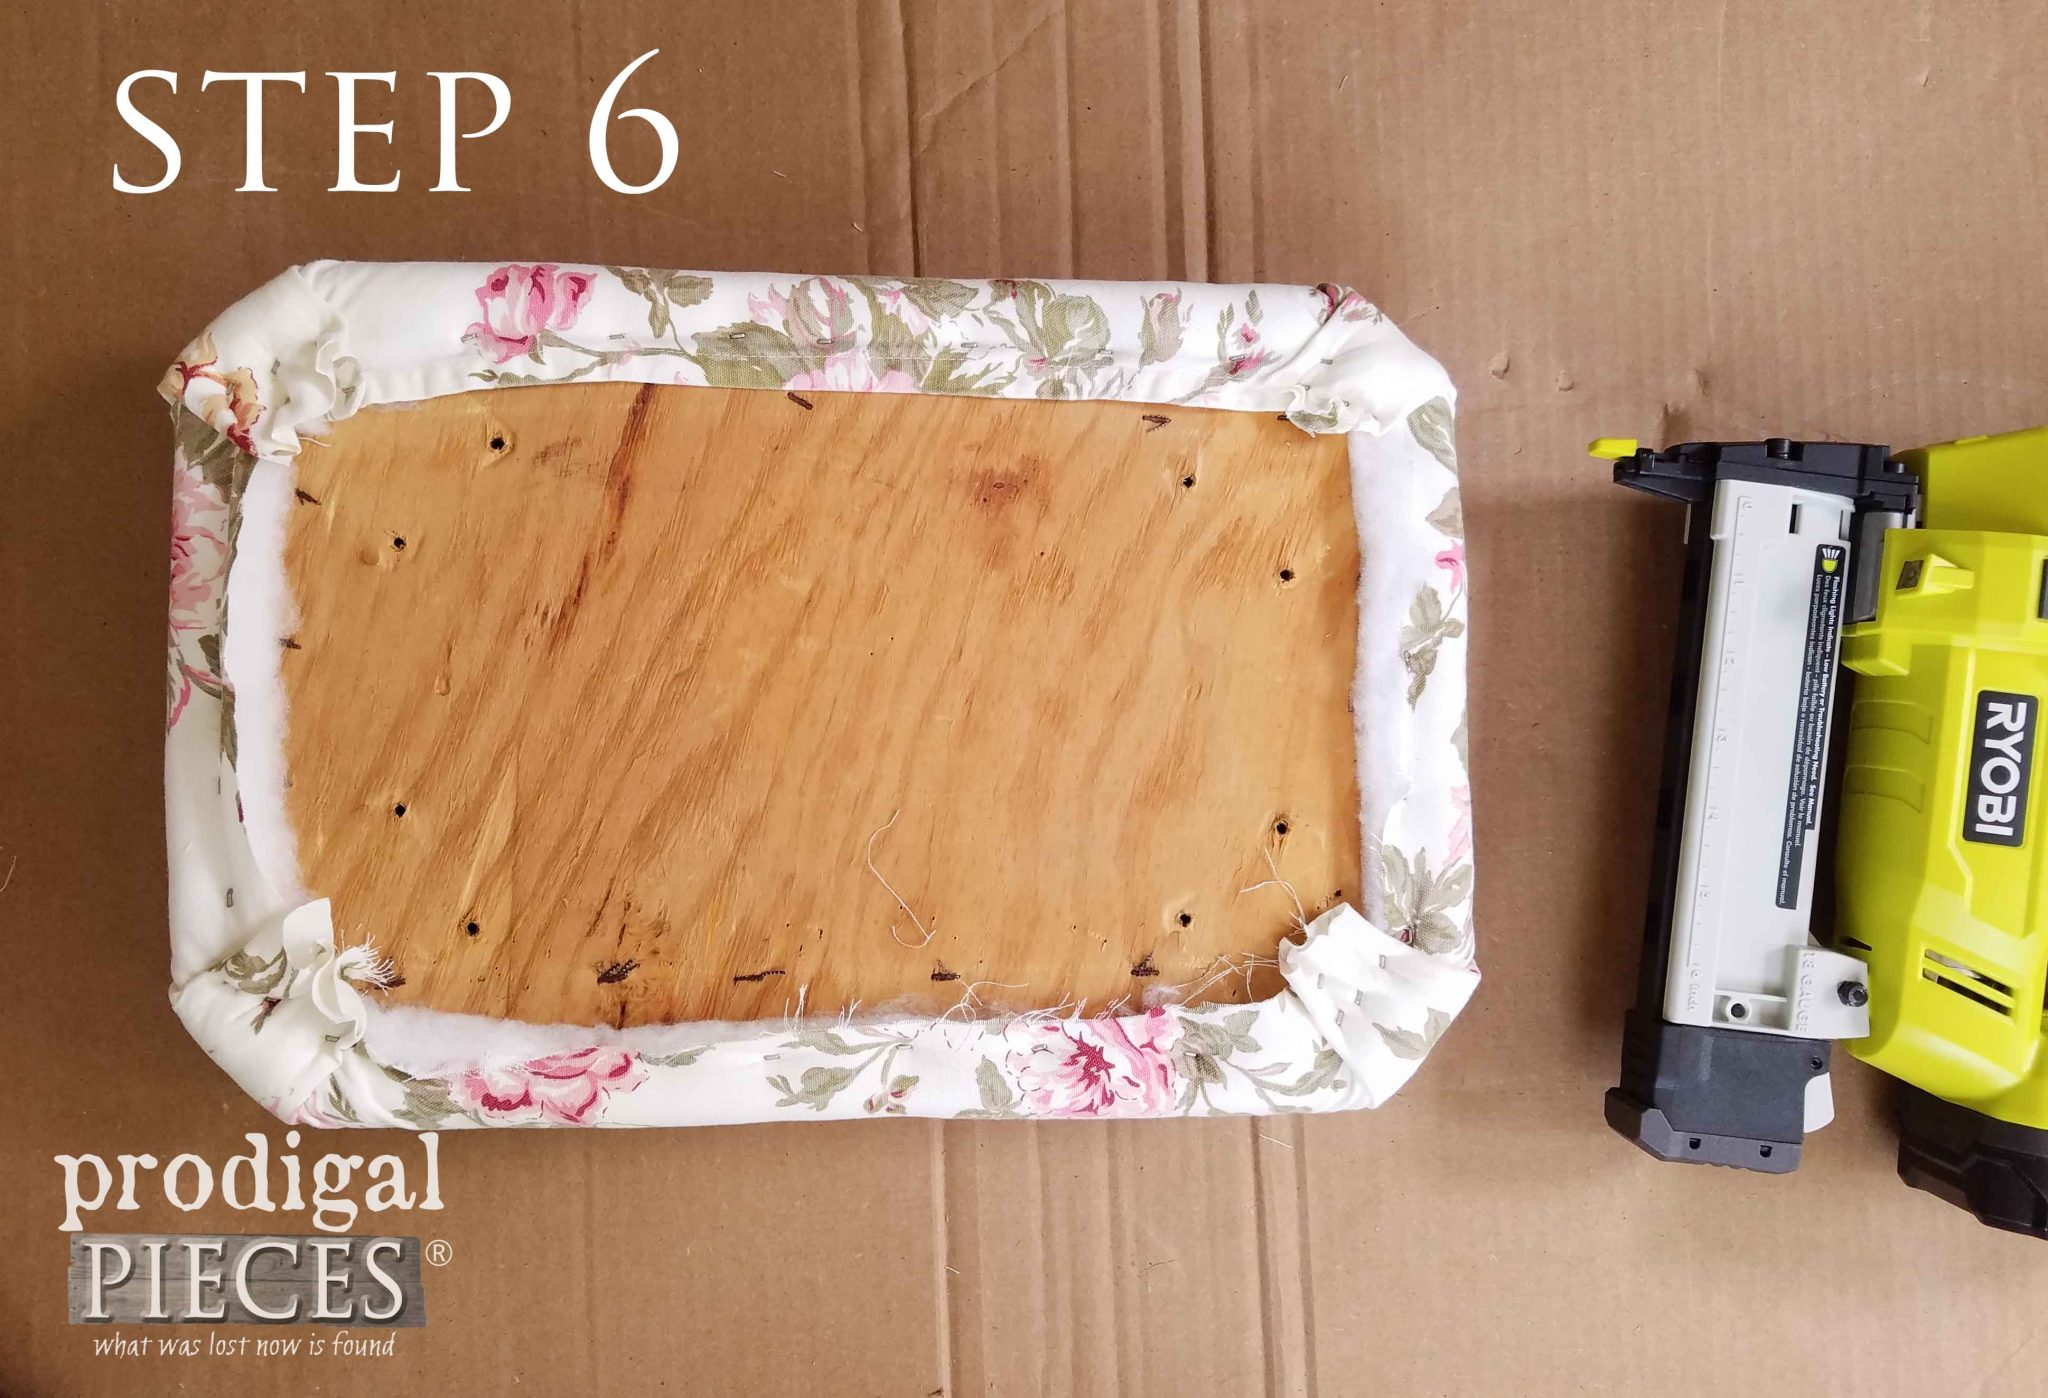 Step 6 of Upholstering Footstool - Trimming | prodigalpieces.com